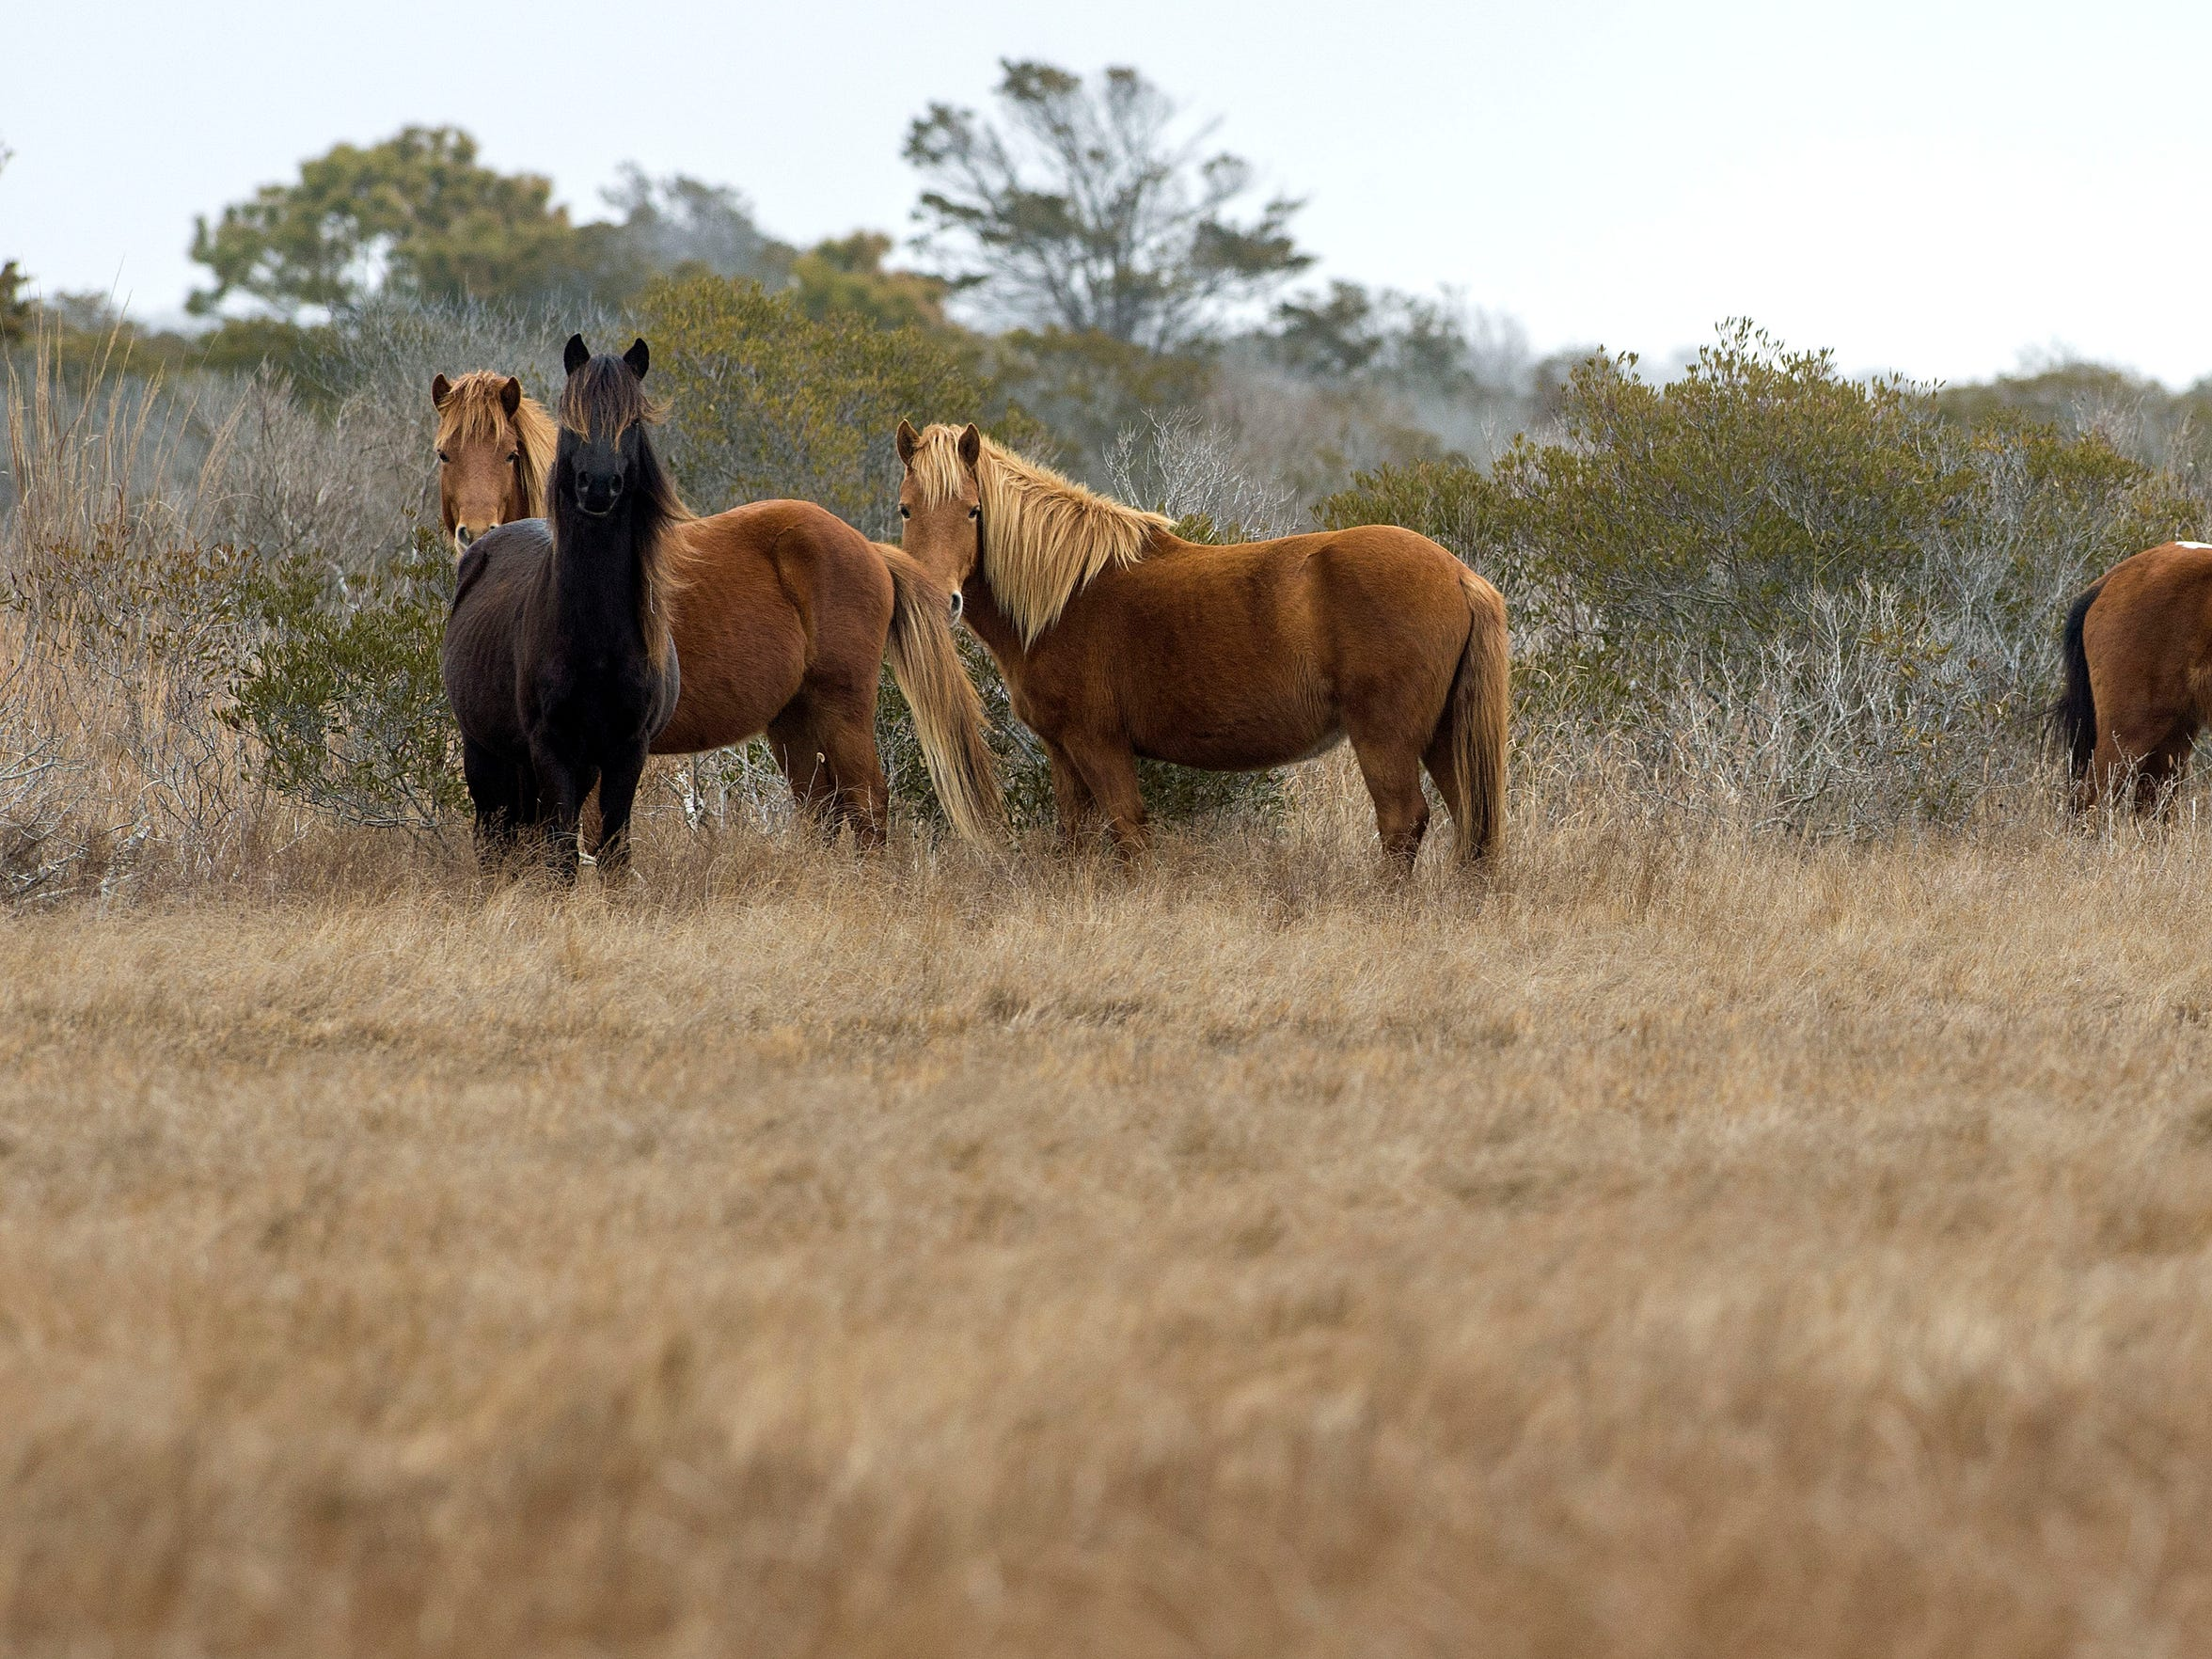 A band of horses on Assateague Island watches curiously